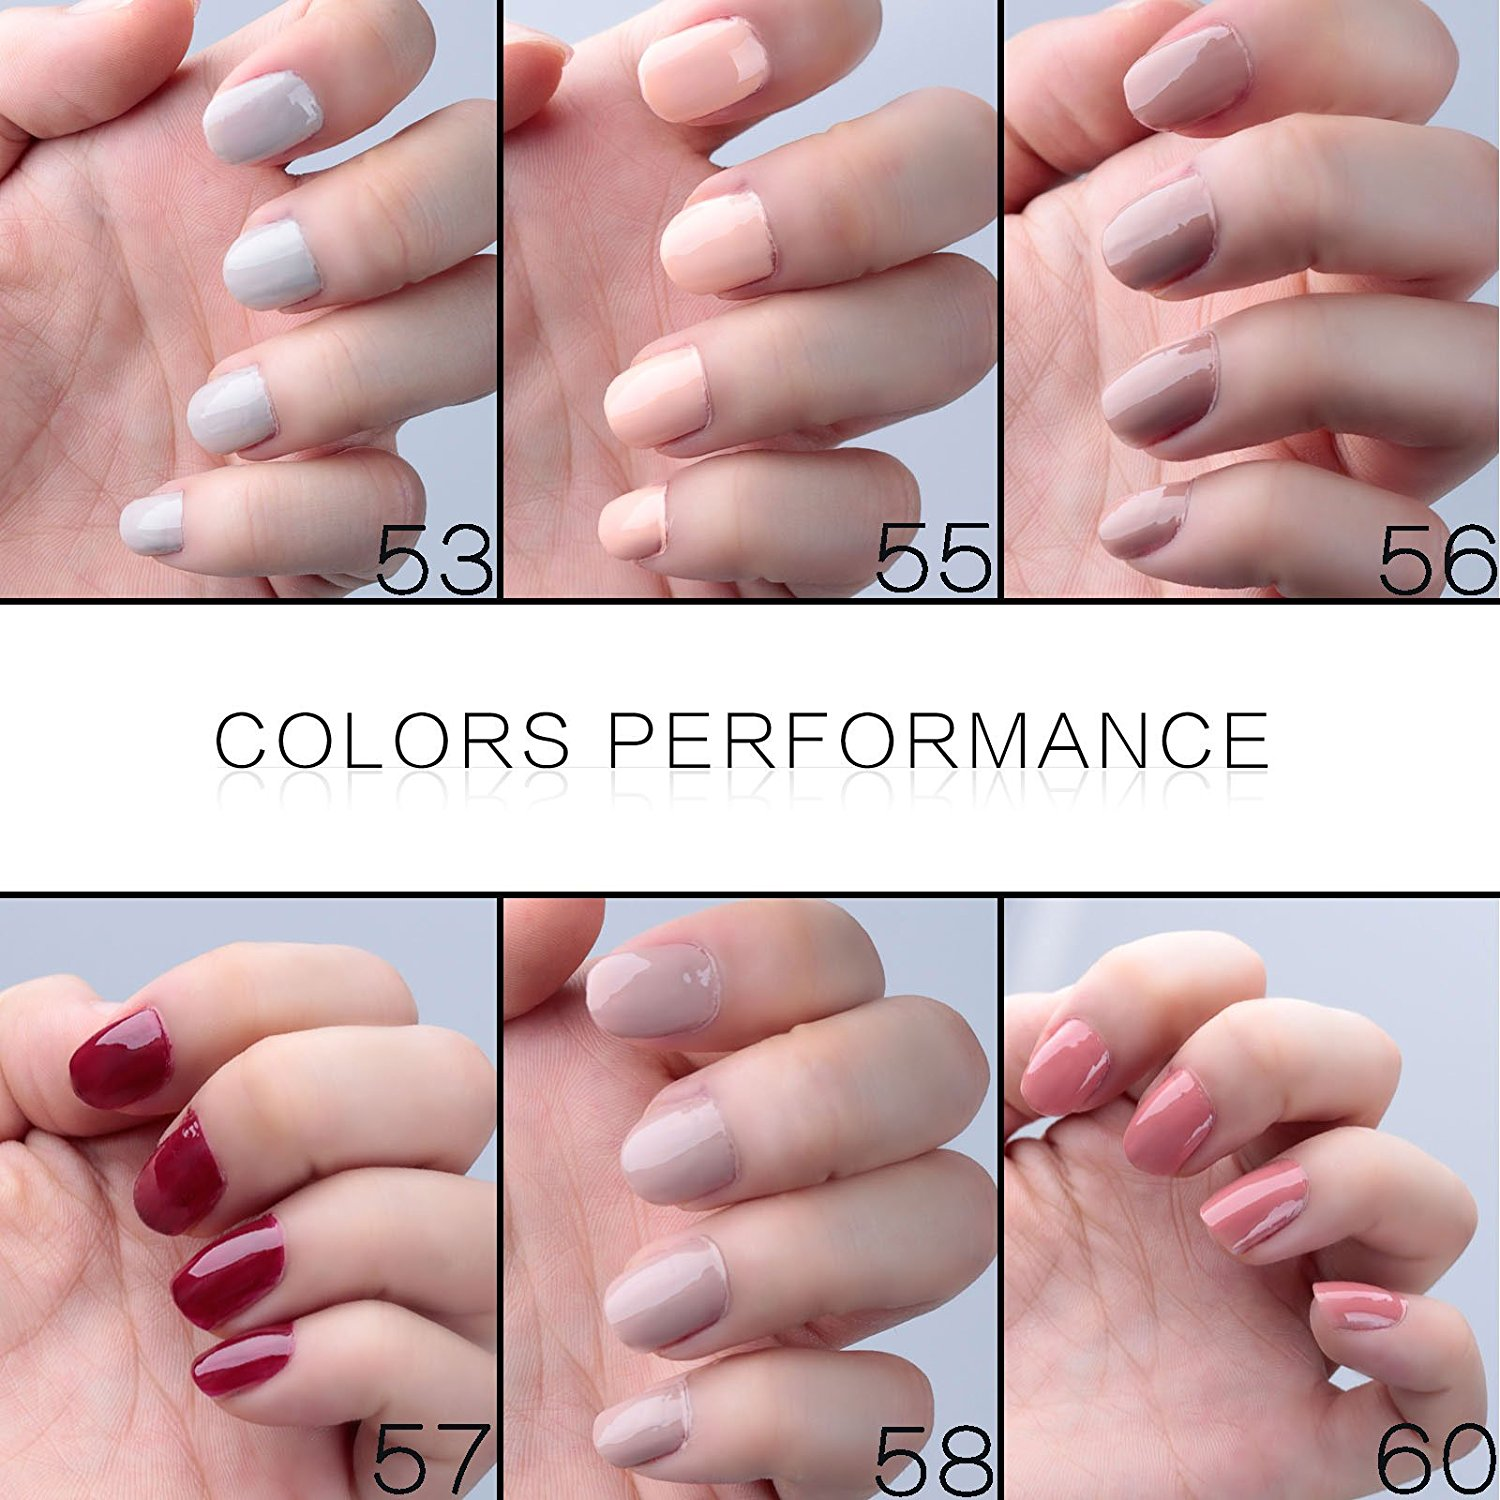 a58d47c881 Gellen Nail Polish Review (Choices from over 300 Colors!)